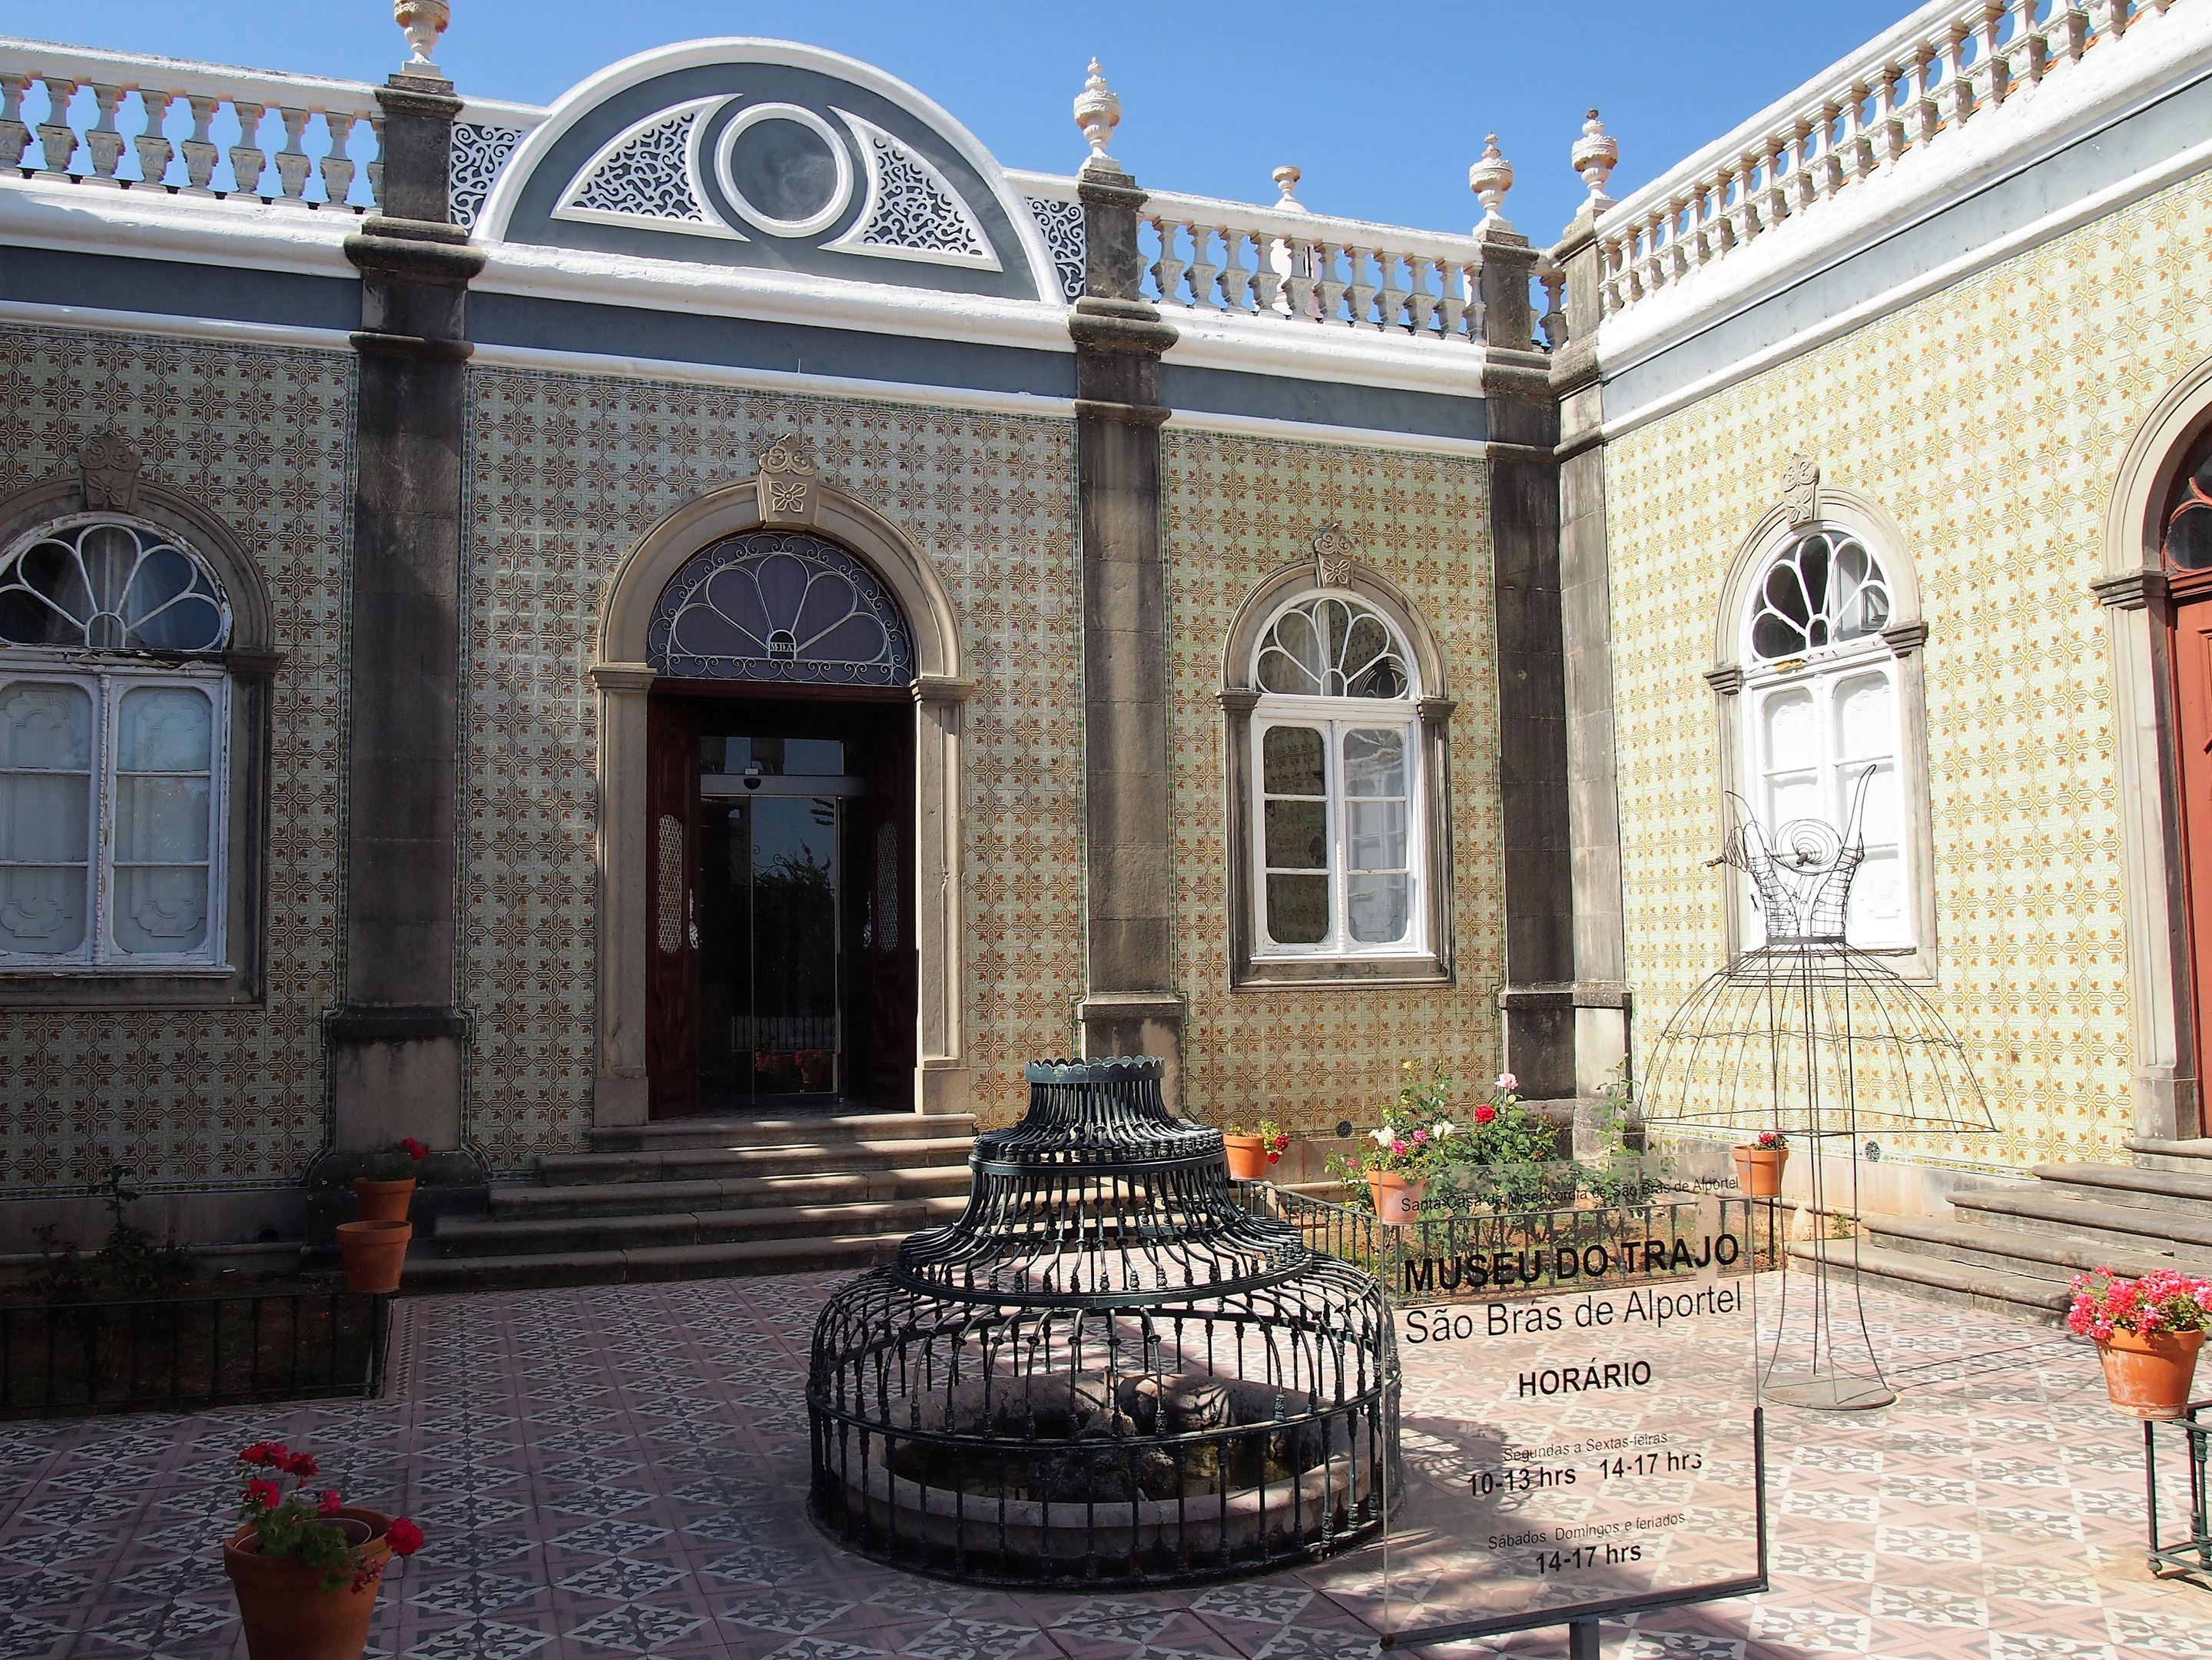 In the courtyard of the Algarve Costume Museum, São Brás de Alportel